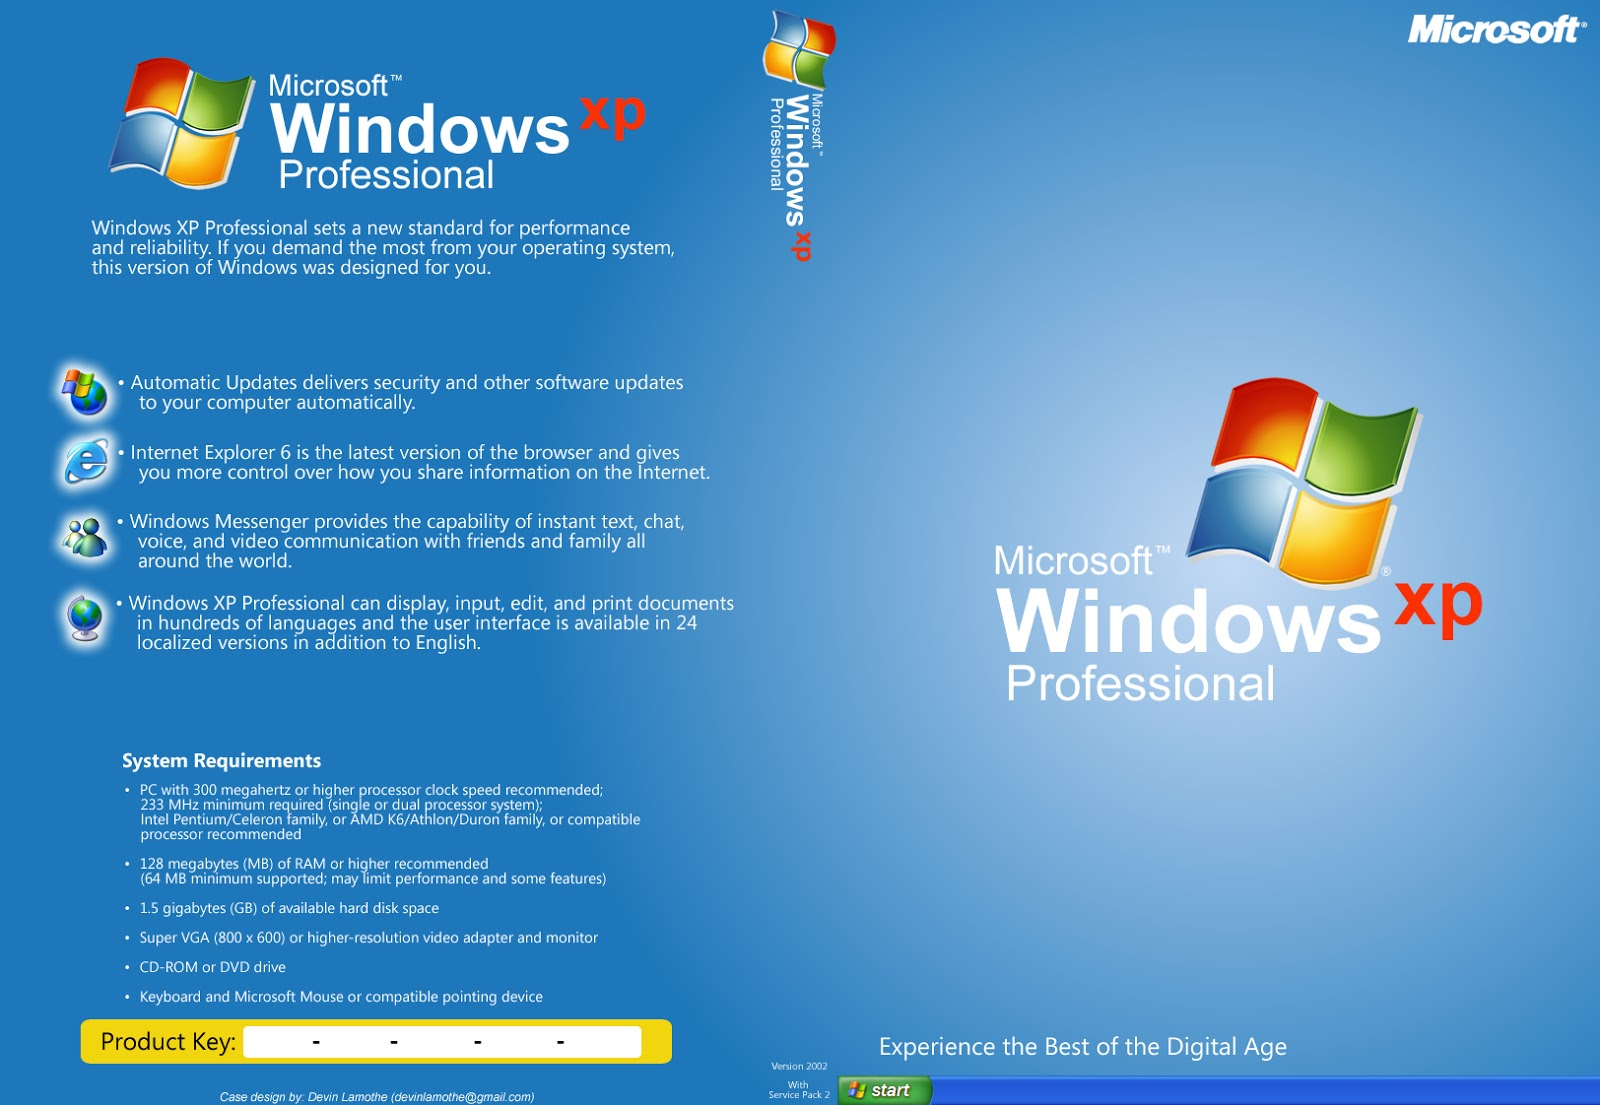 Windows xp sp3 2011 netbook edition by joel1304 be ah pro free.